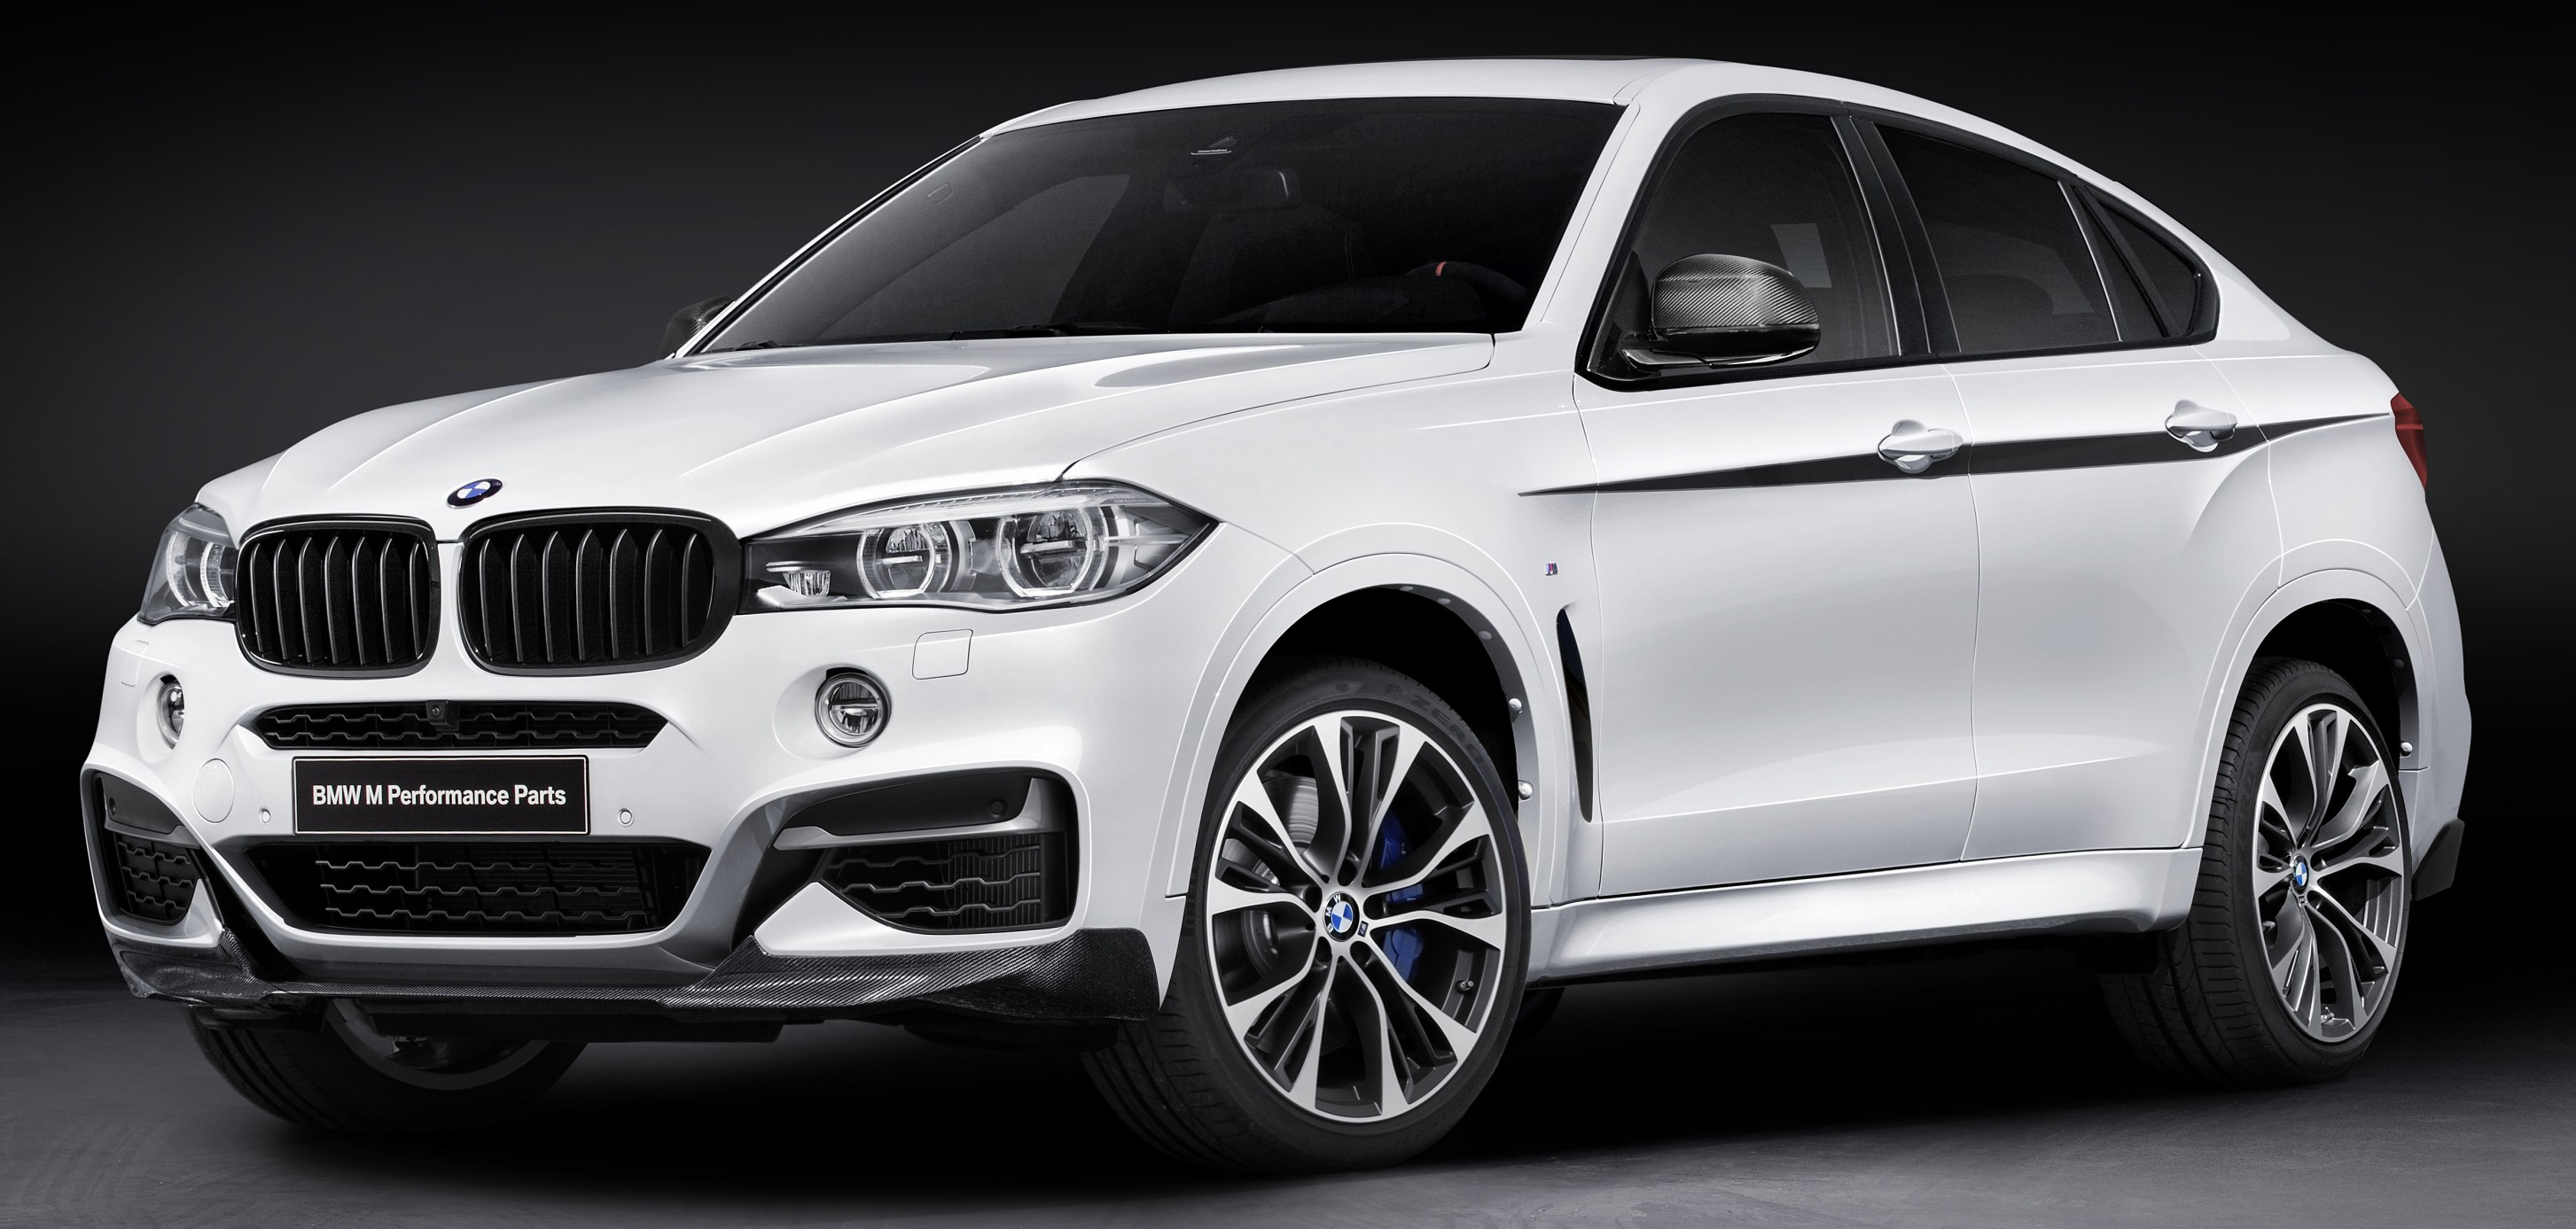 f16 bmw x6 gets bmw m performance parts range image 294419. Black Bedroom Furniture Sets. Home Design Ideas